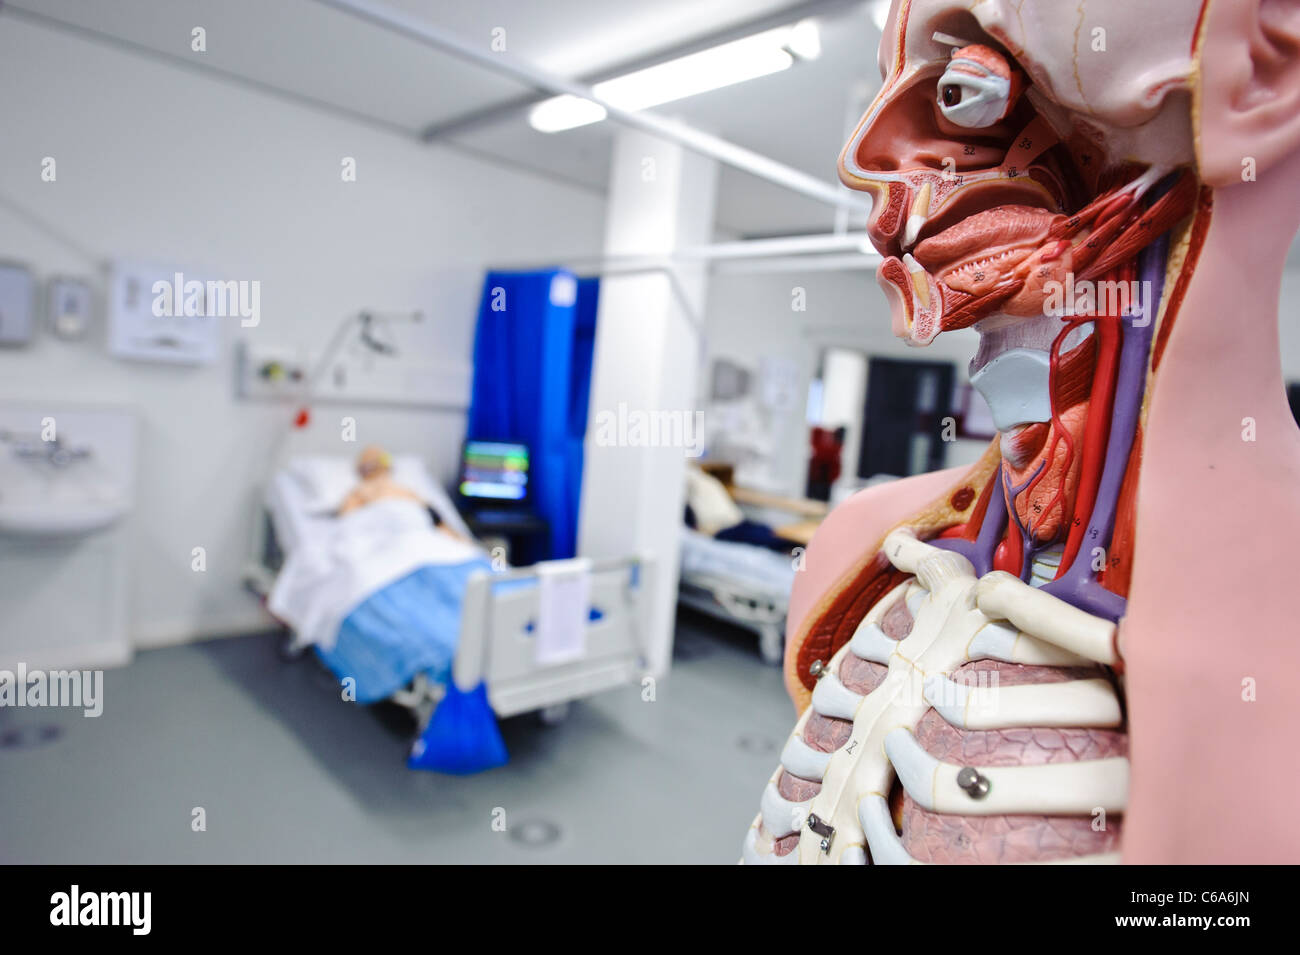 human anatomy anatomical model hospital ward setting clinical skills lab dummy patient in bed - Stock Image